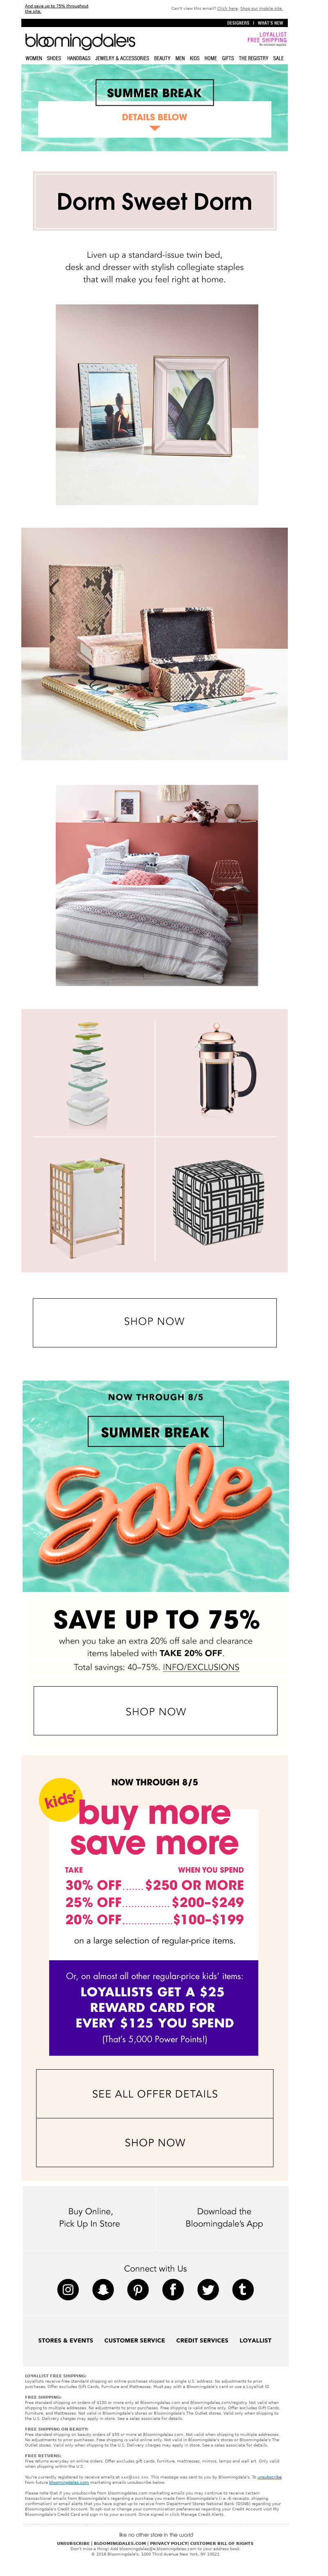 Labor Day Email example from Bloomingdale's